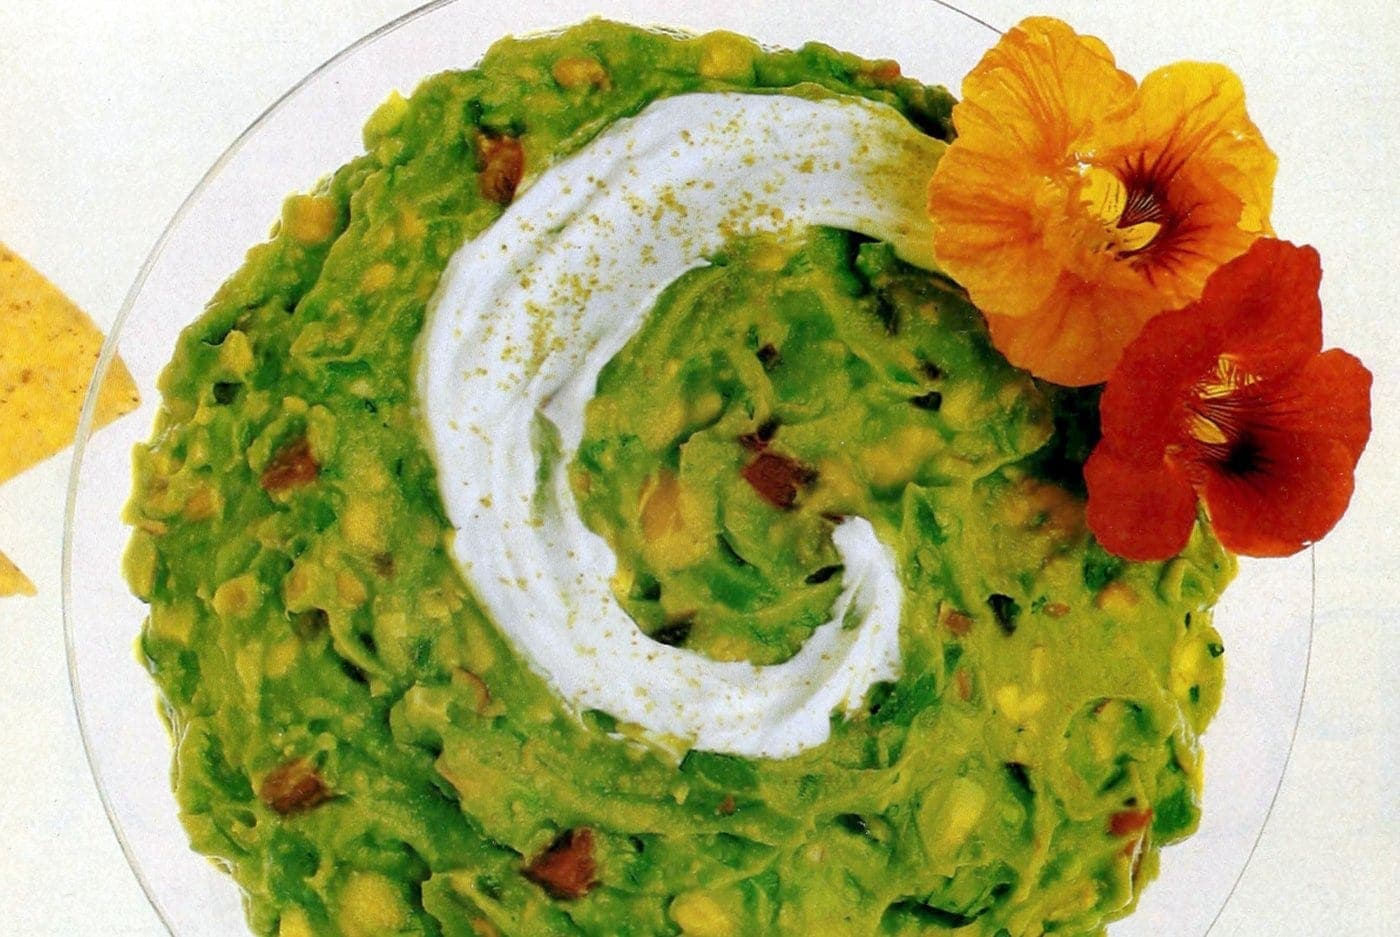 Holy guacamole 80s recipe for divine dip